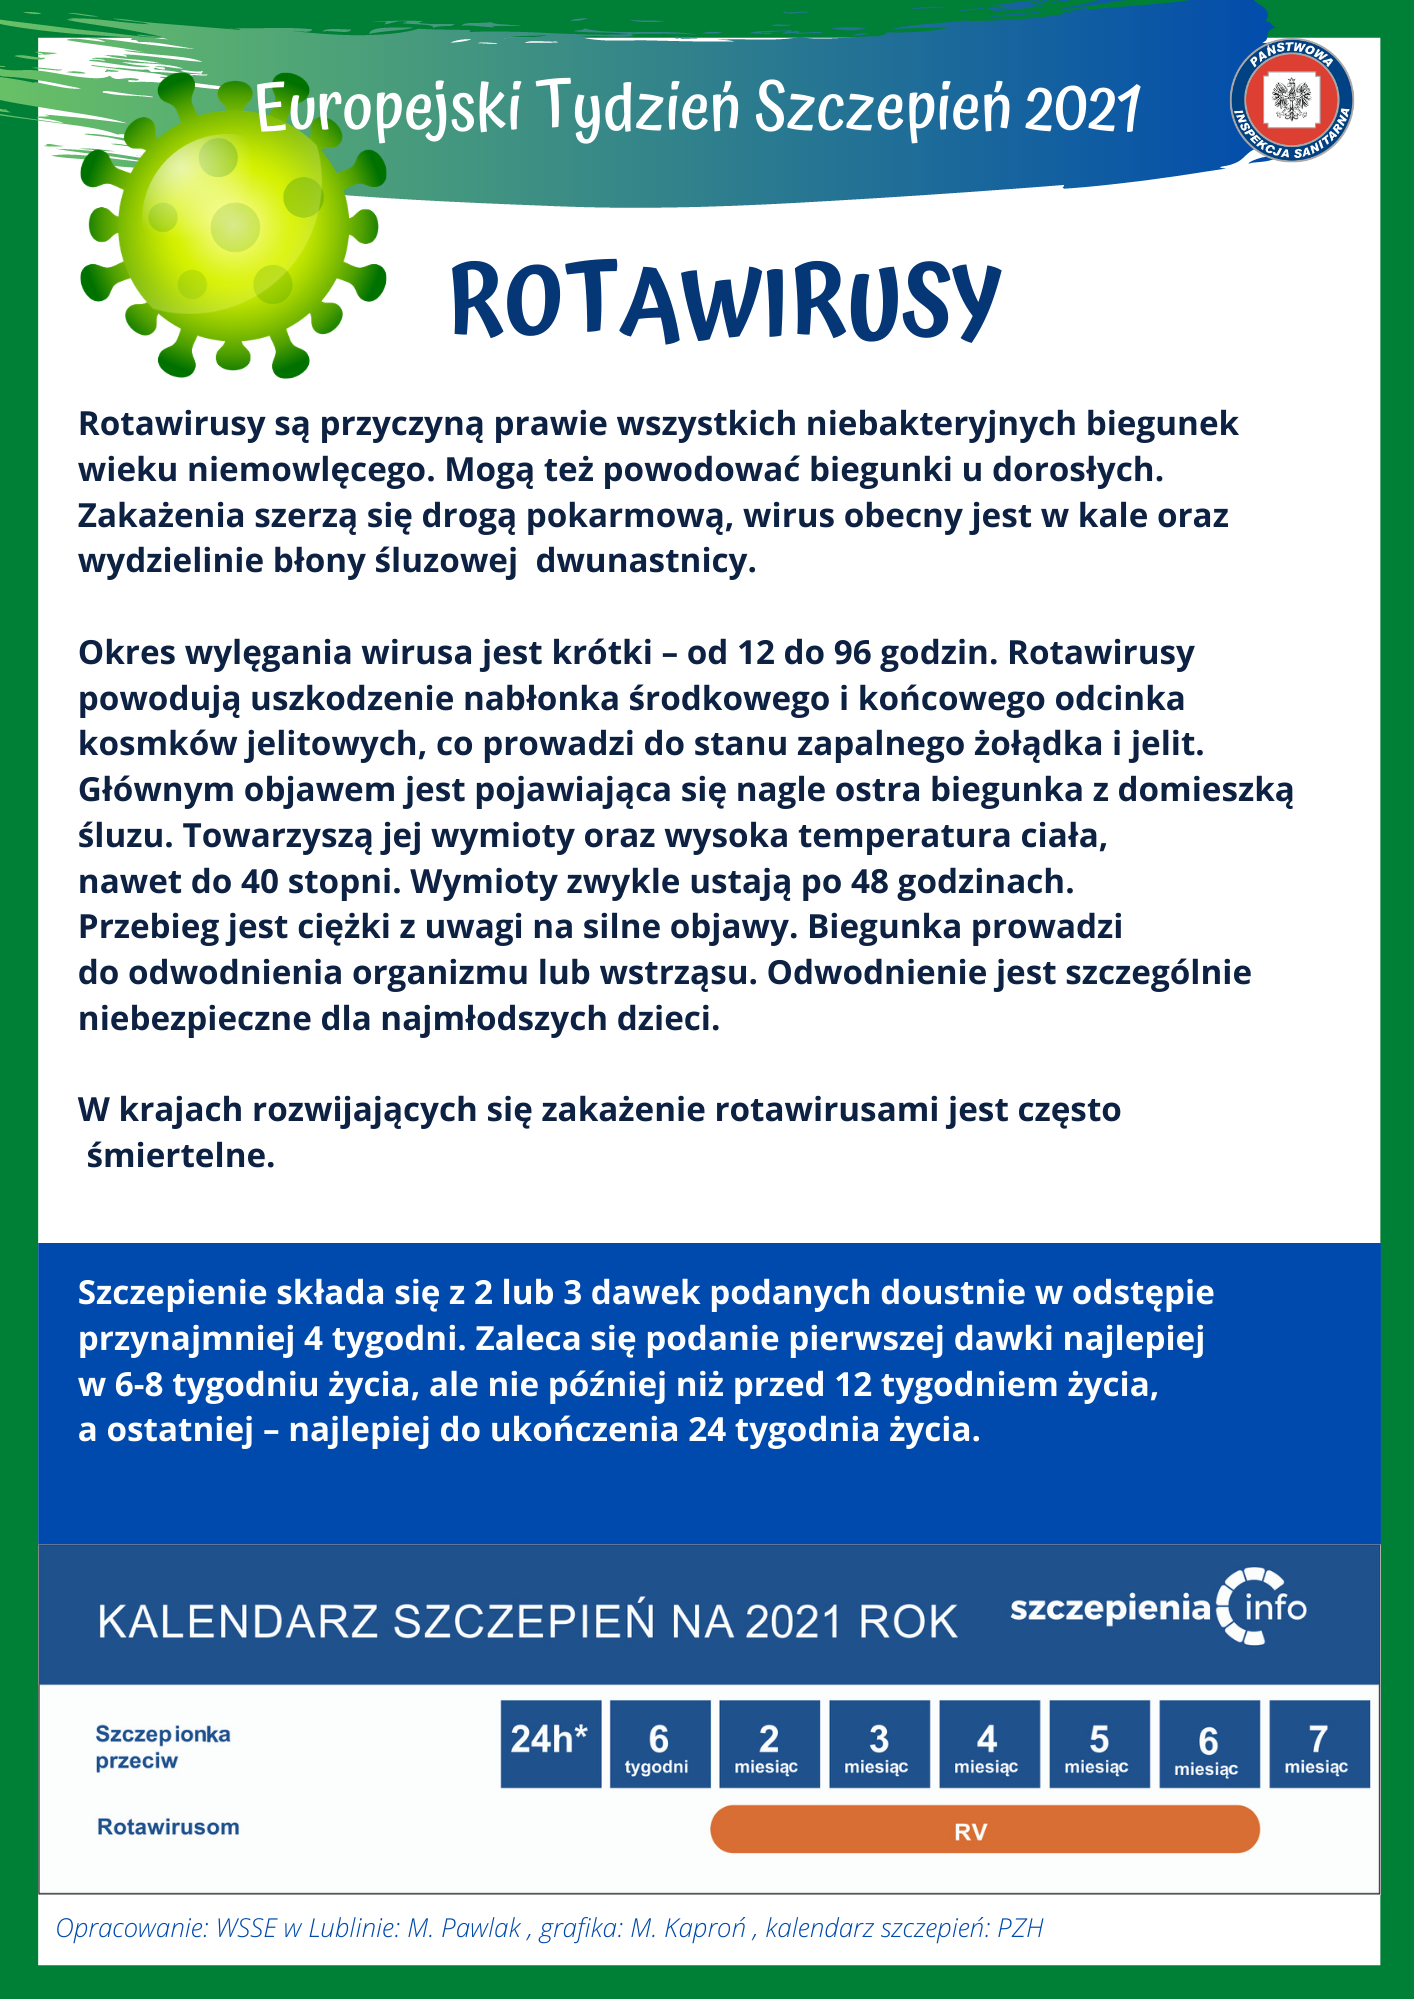 ROTAWIRUSY